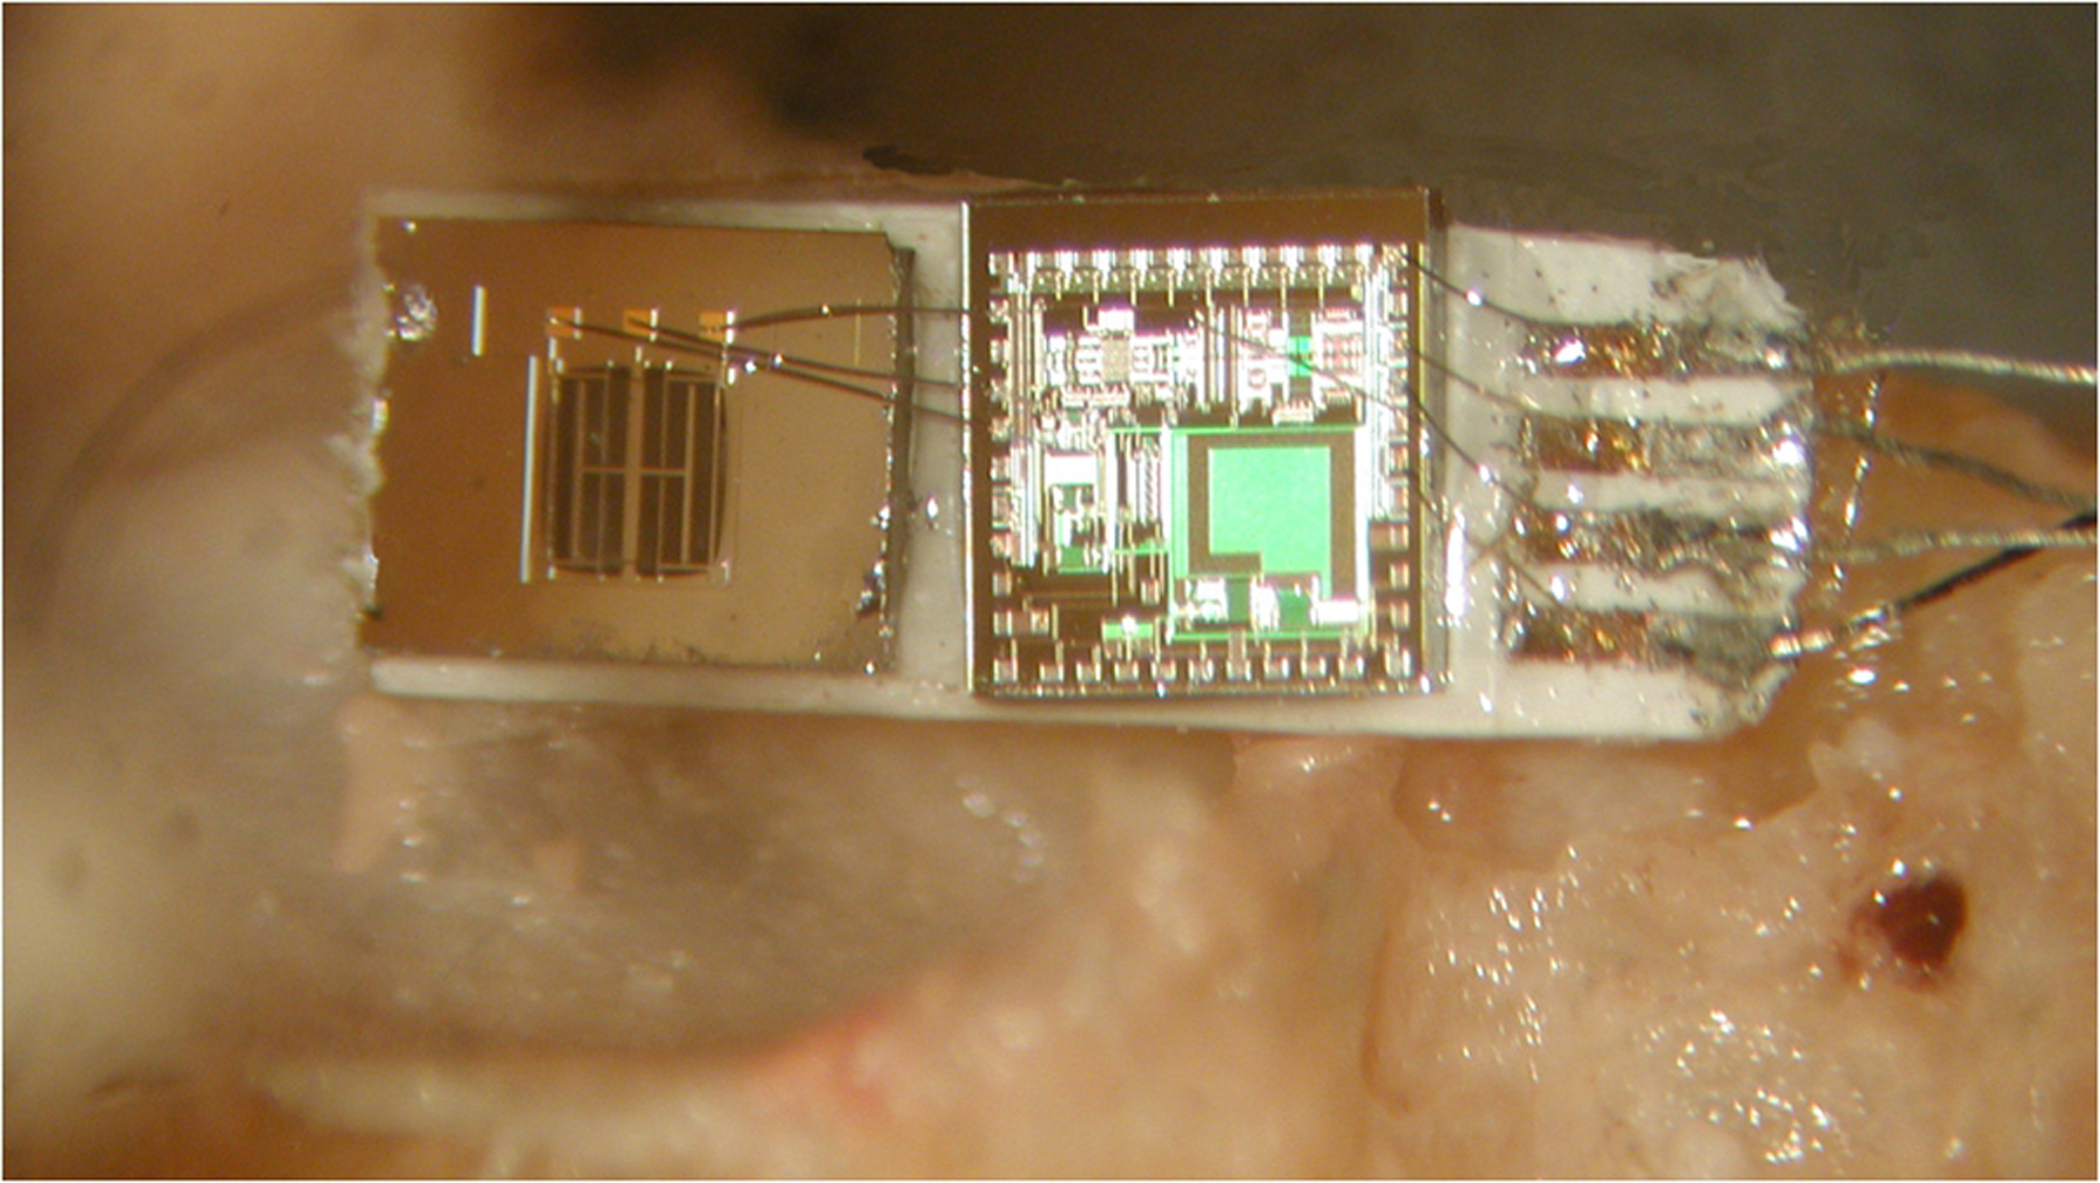 A new kind of tiny microphone is shown here attached at right to a cadaver's umbo, where the eardrum (under left part of device) meets the hearing bones. The microphone includes an accelerometer and silicon chip that detect vibrations and convert them to electronic signals sent to electrodes in the inner ear's cochlea, and from there to the brain. The device measures about one-tenth inch by one-quarter inch.